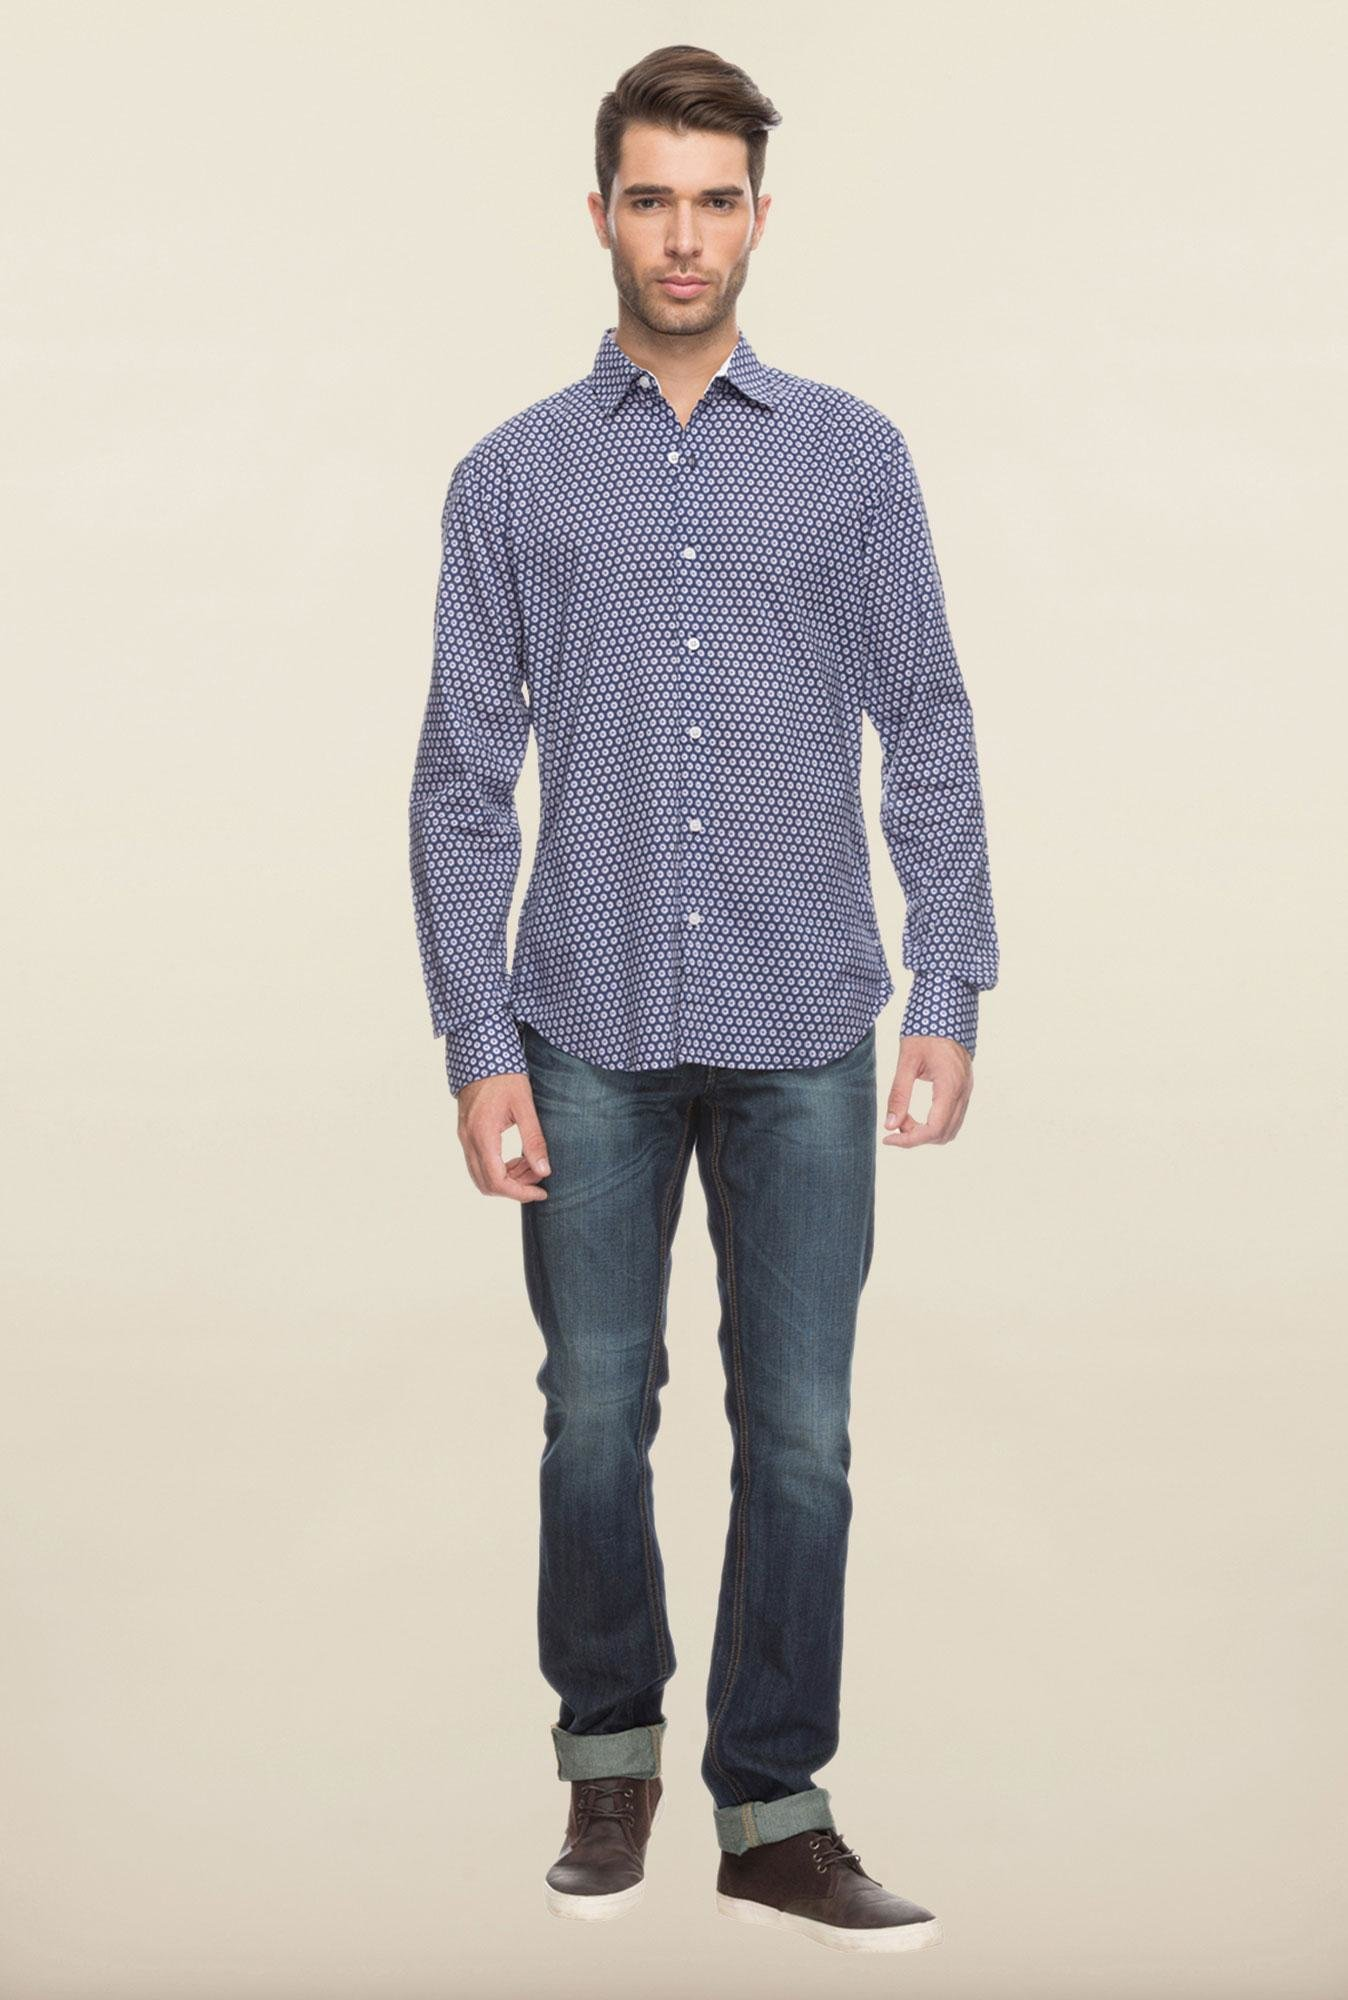 Cottonworld Crest Blue Printed Casual Shirt